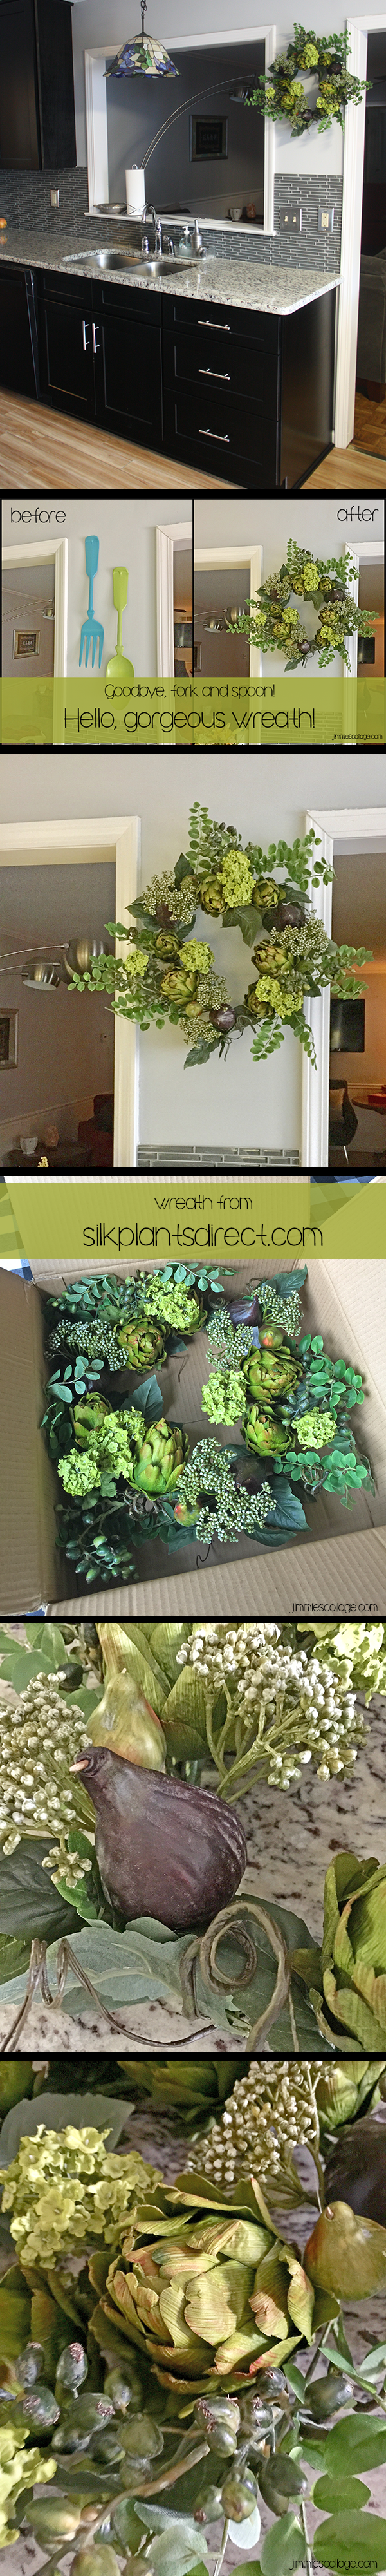 sponsored: Artichoke Floral Wreath from Silk Plants Direct